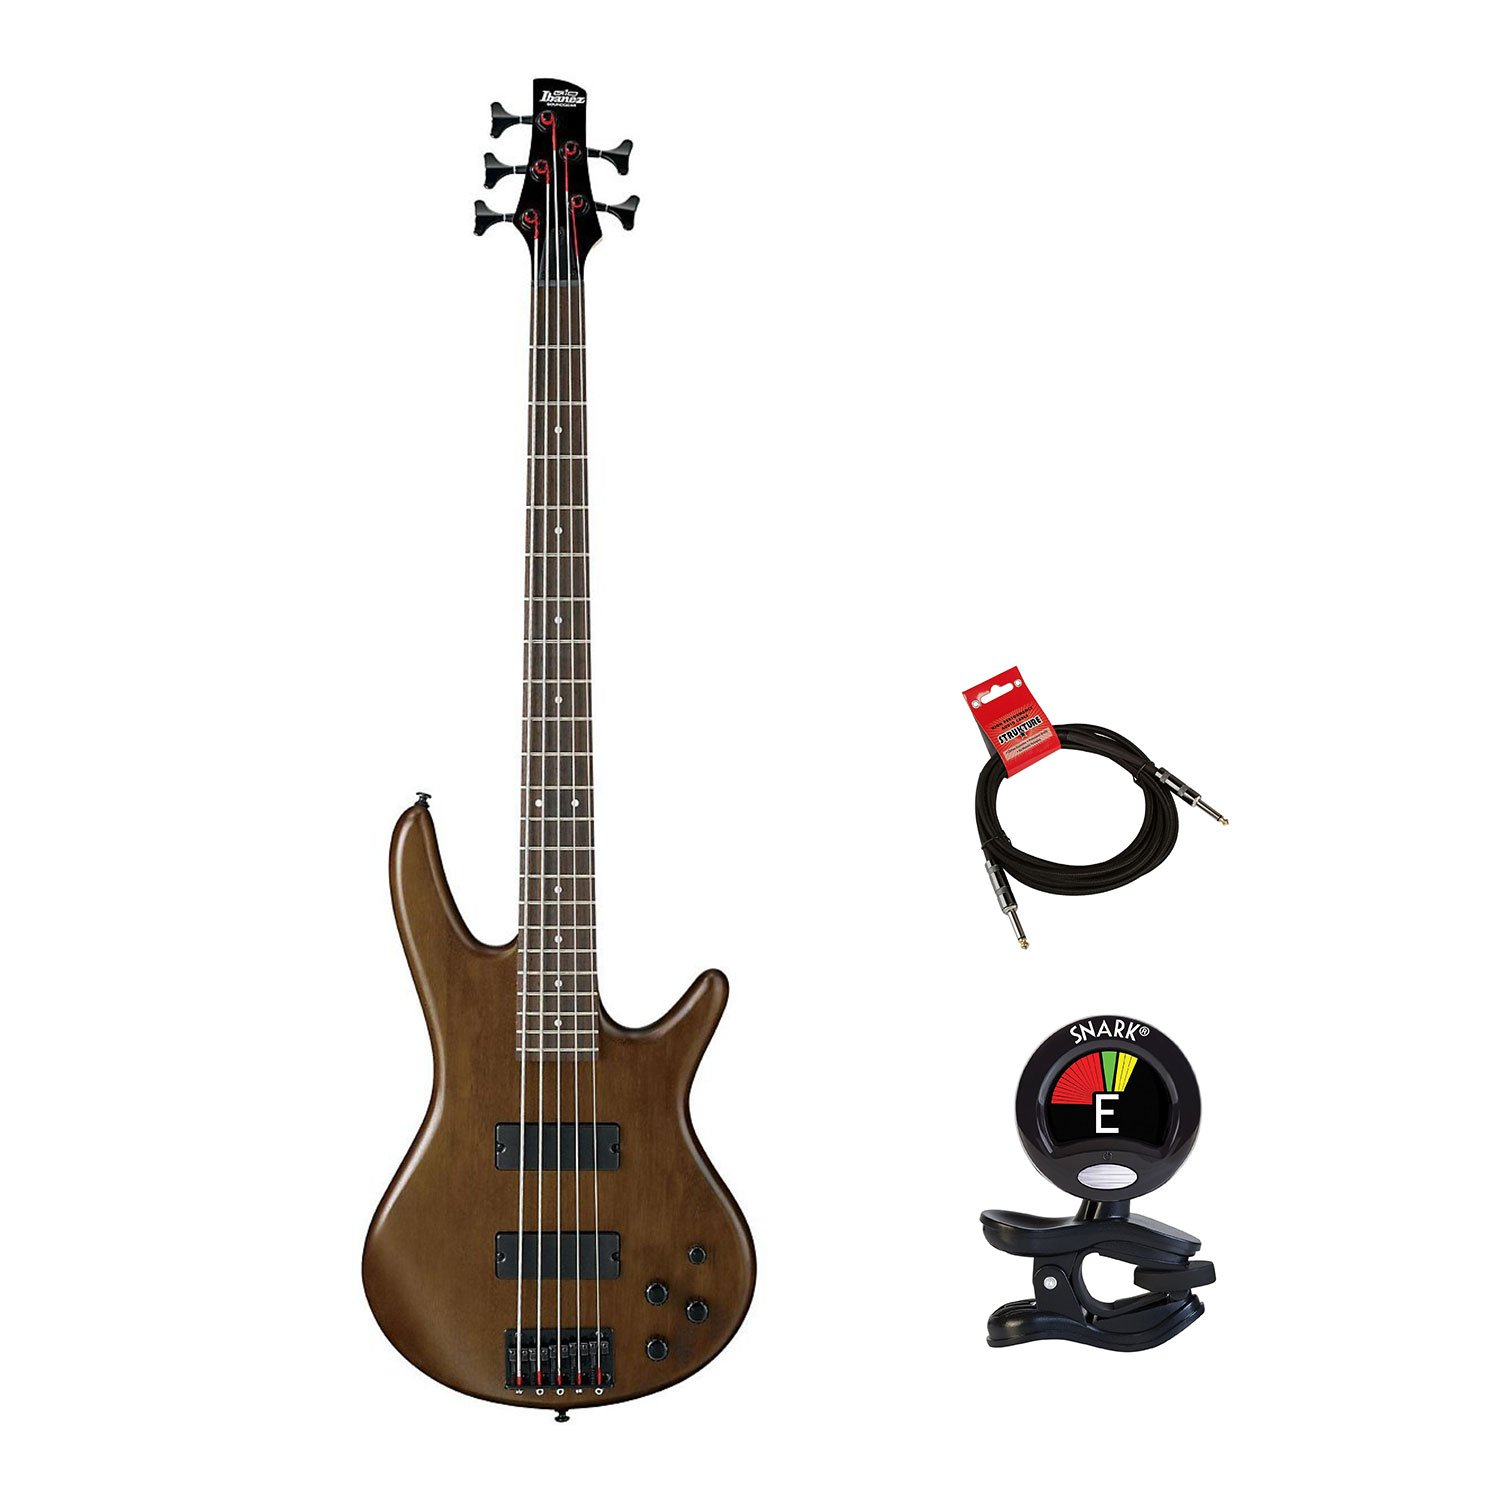 IBANEZ GSR205BWNF 5 String Electric Bass Guitar with Clip On Guitar Tuner and Guitar Cable